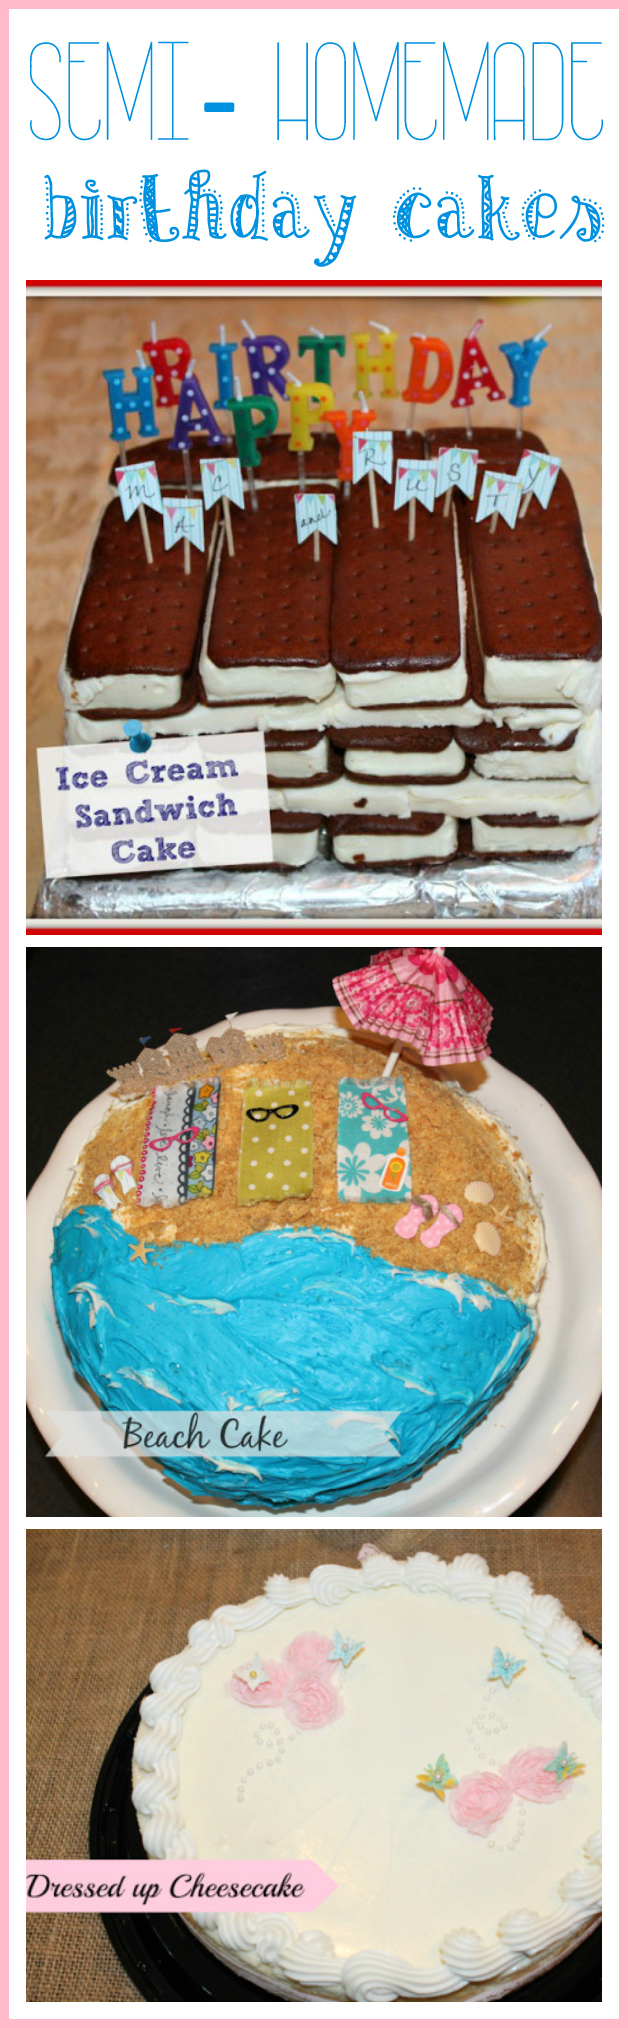 Semi-homemade birthday cake ideas - Ask Anna